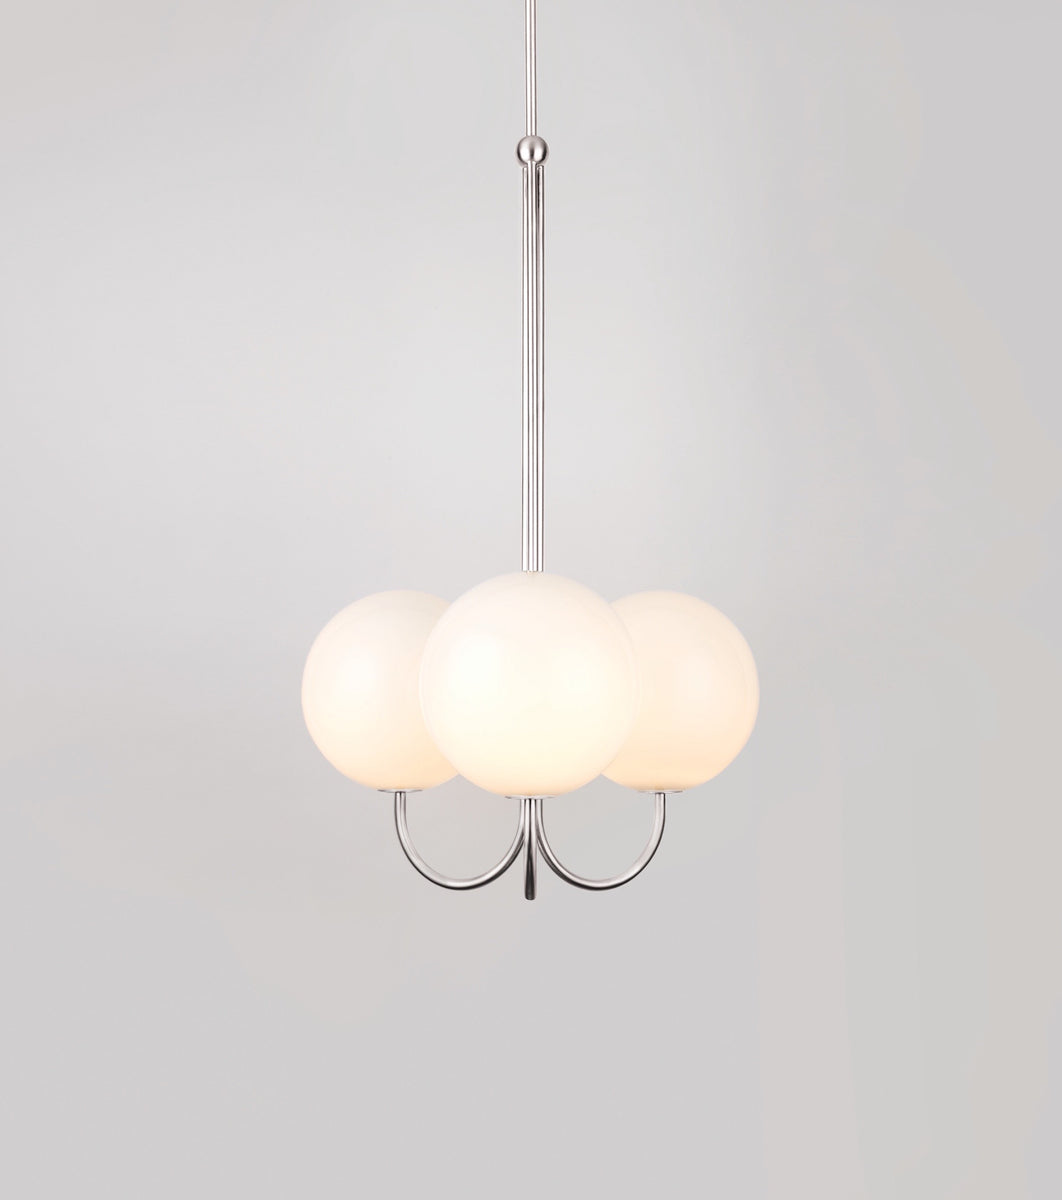 Triple AngleSatin Nickel-plated Brass Michael Anastassiades - Image 1